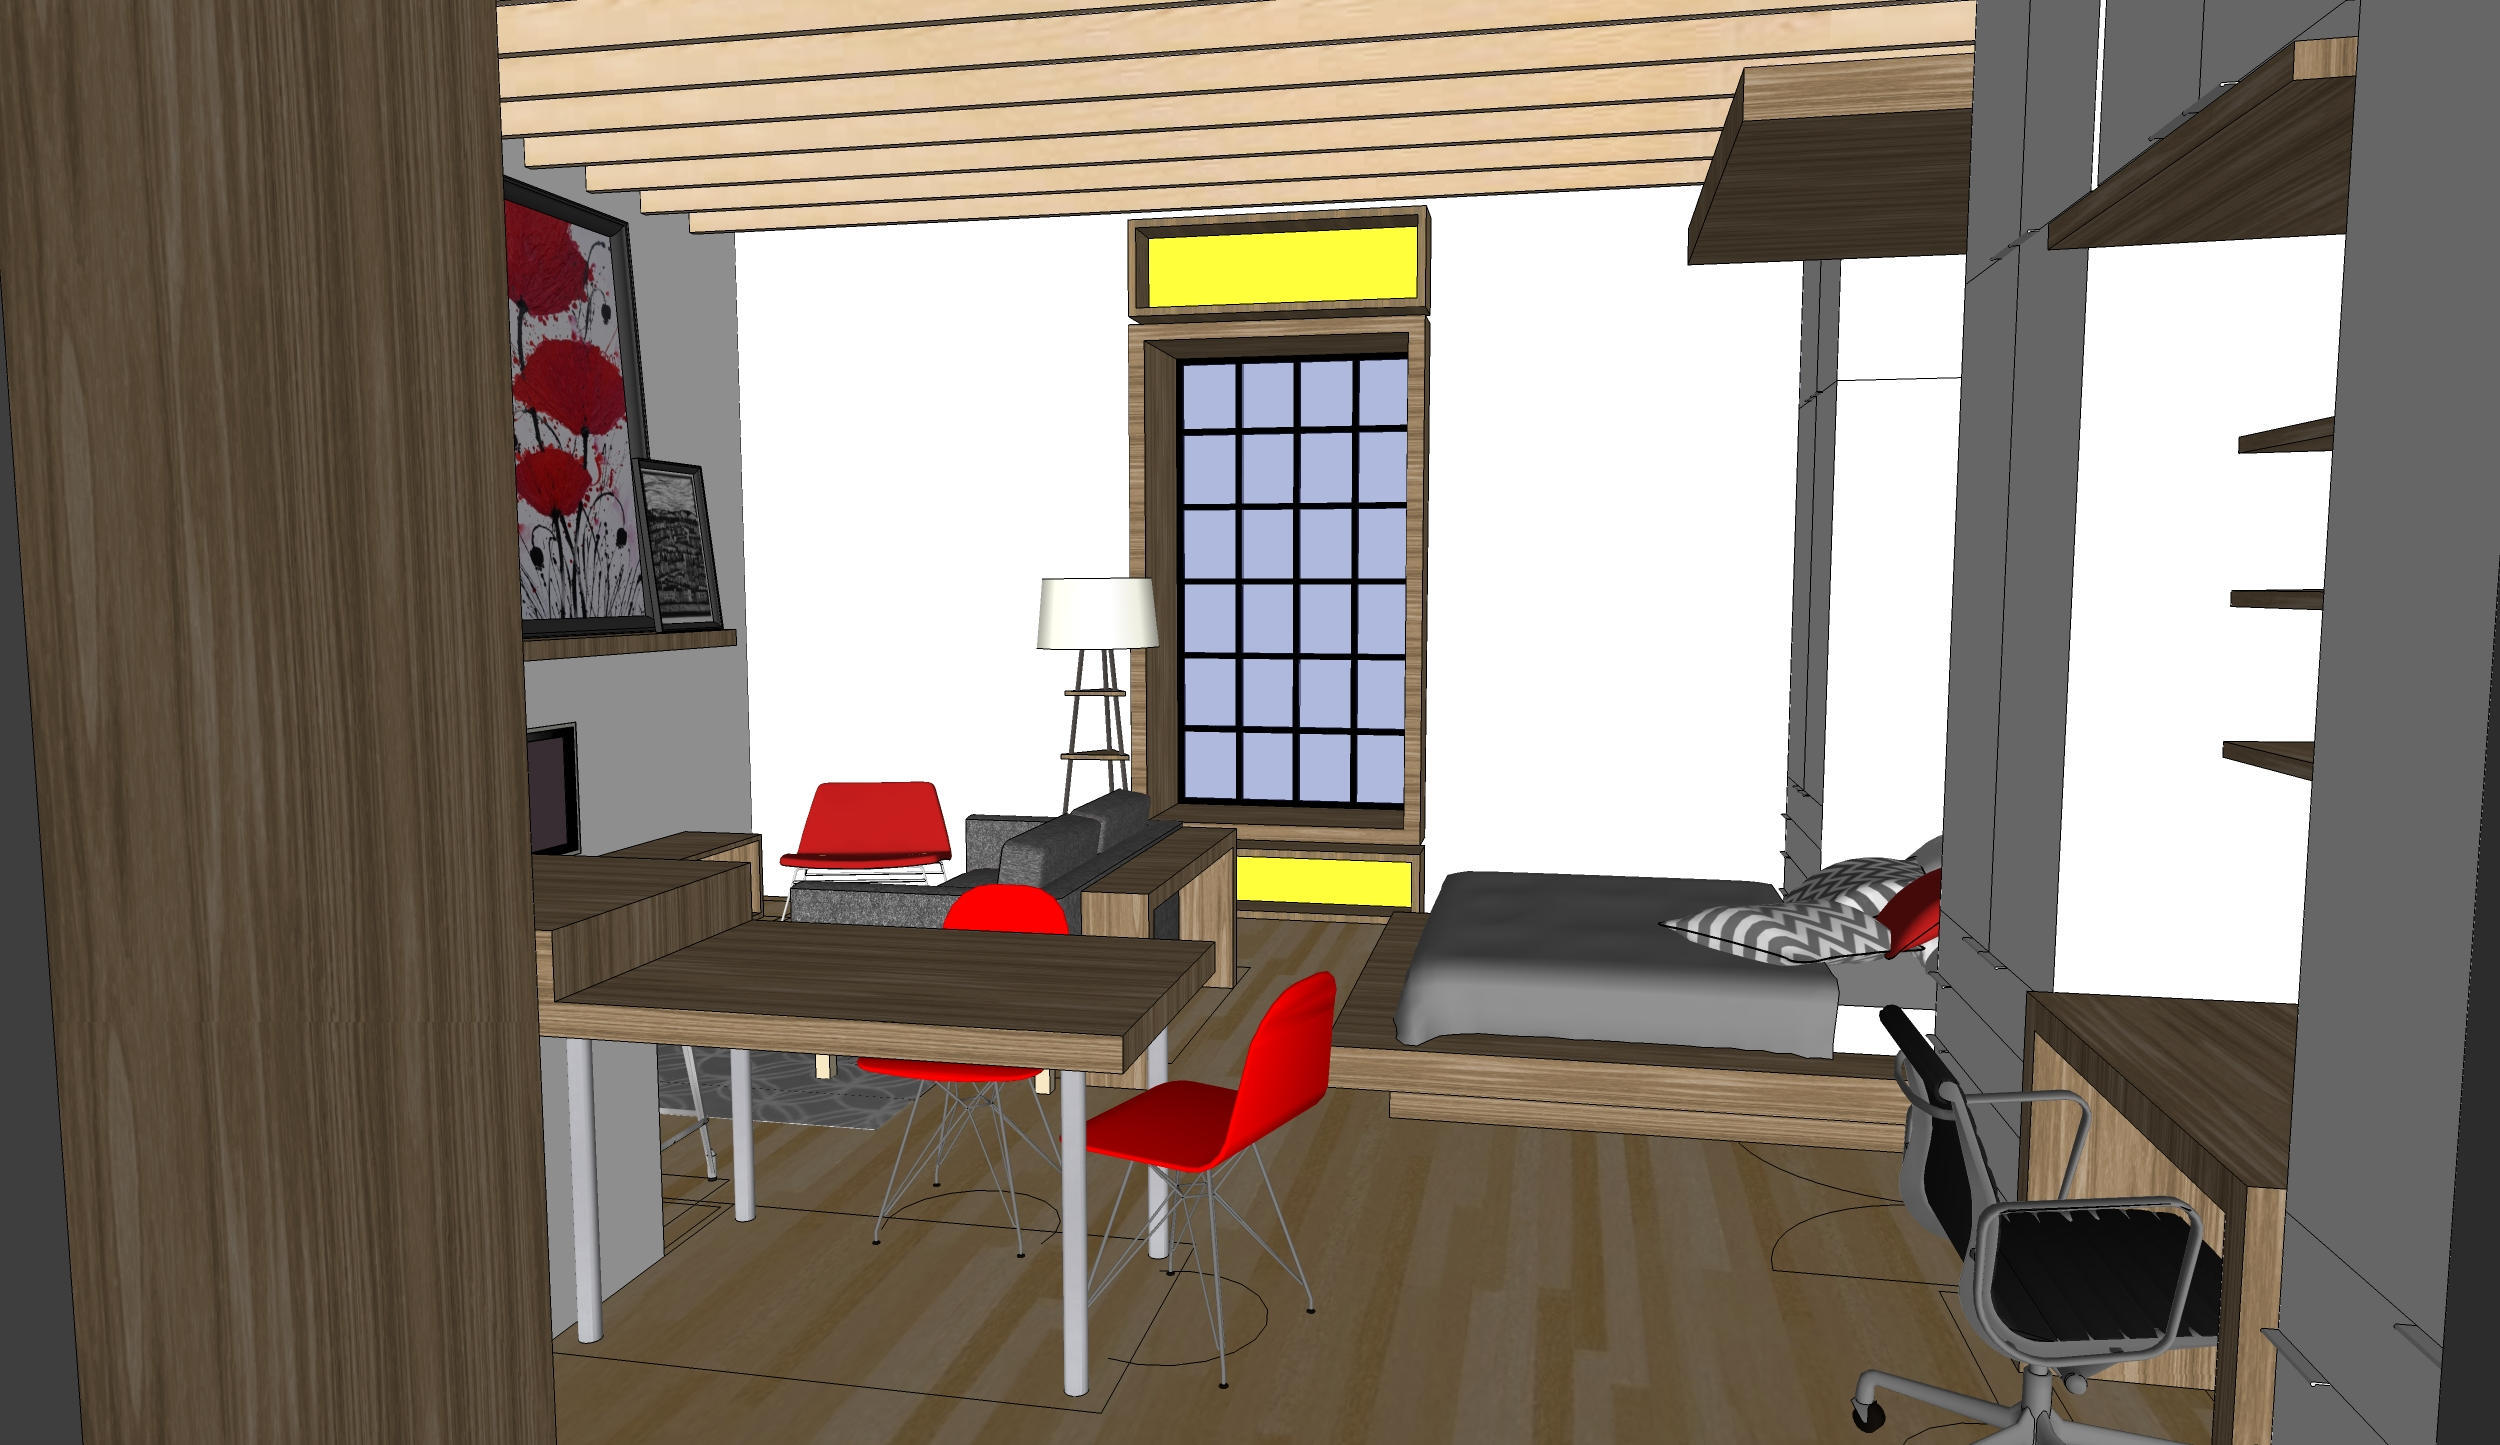 Alpine 3d media apartment interior remodel for Grand designs 3d renovation interior